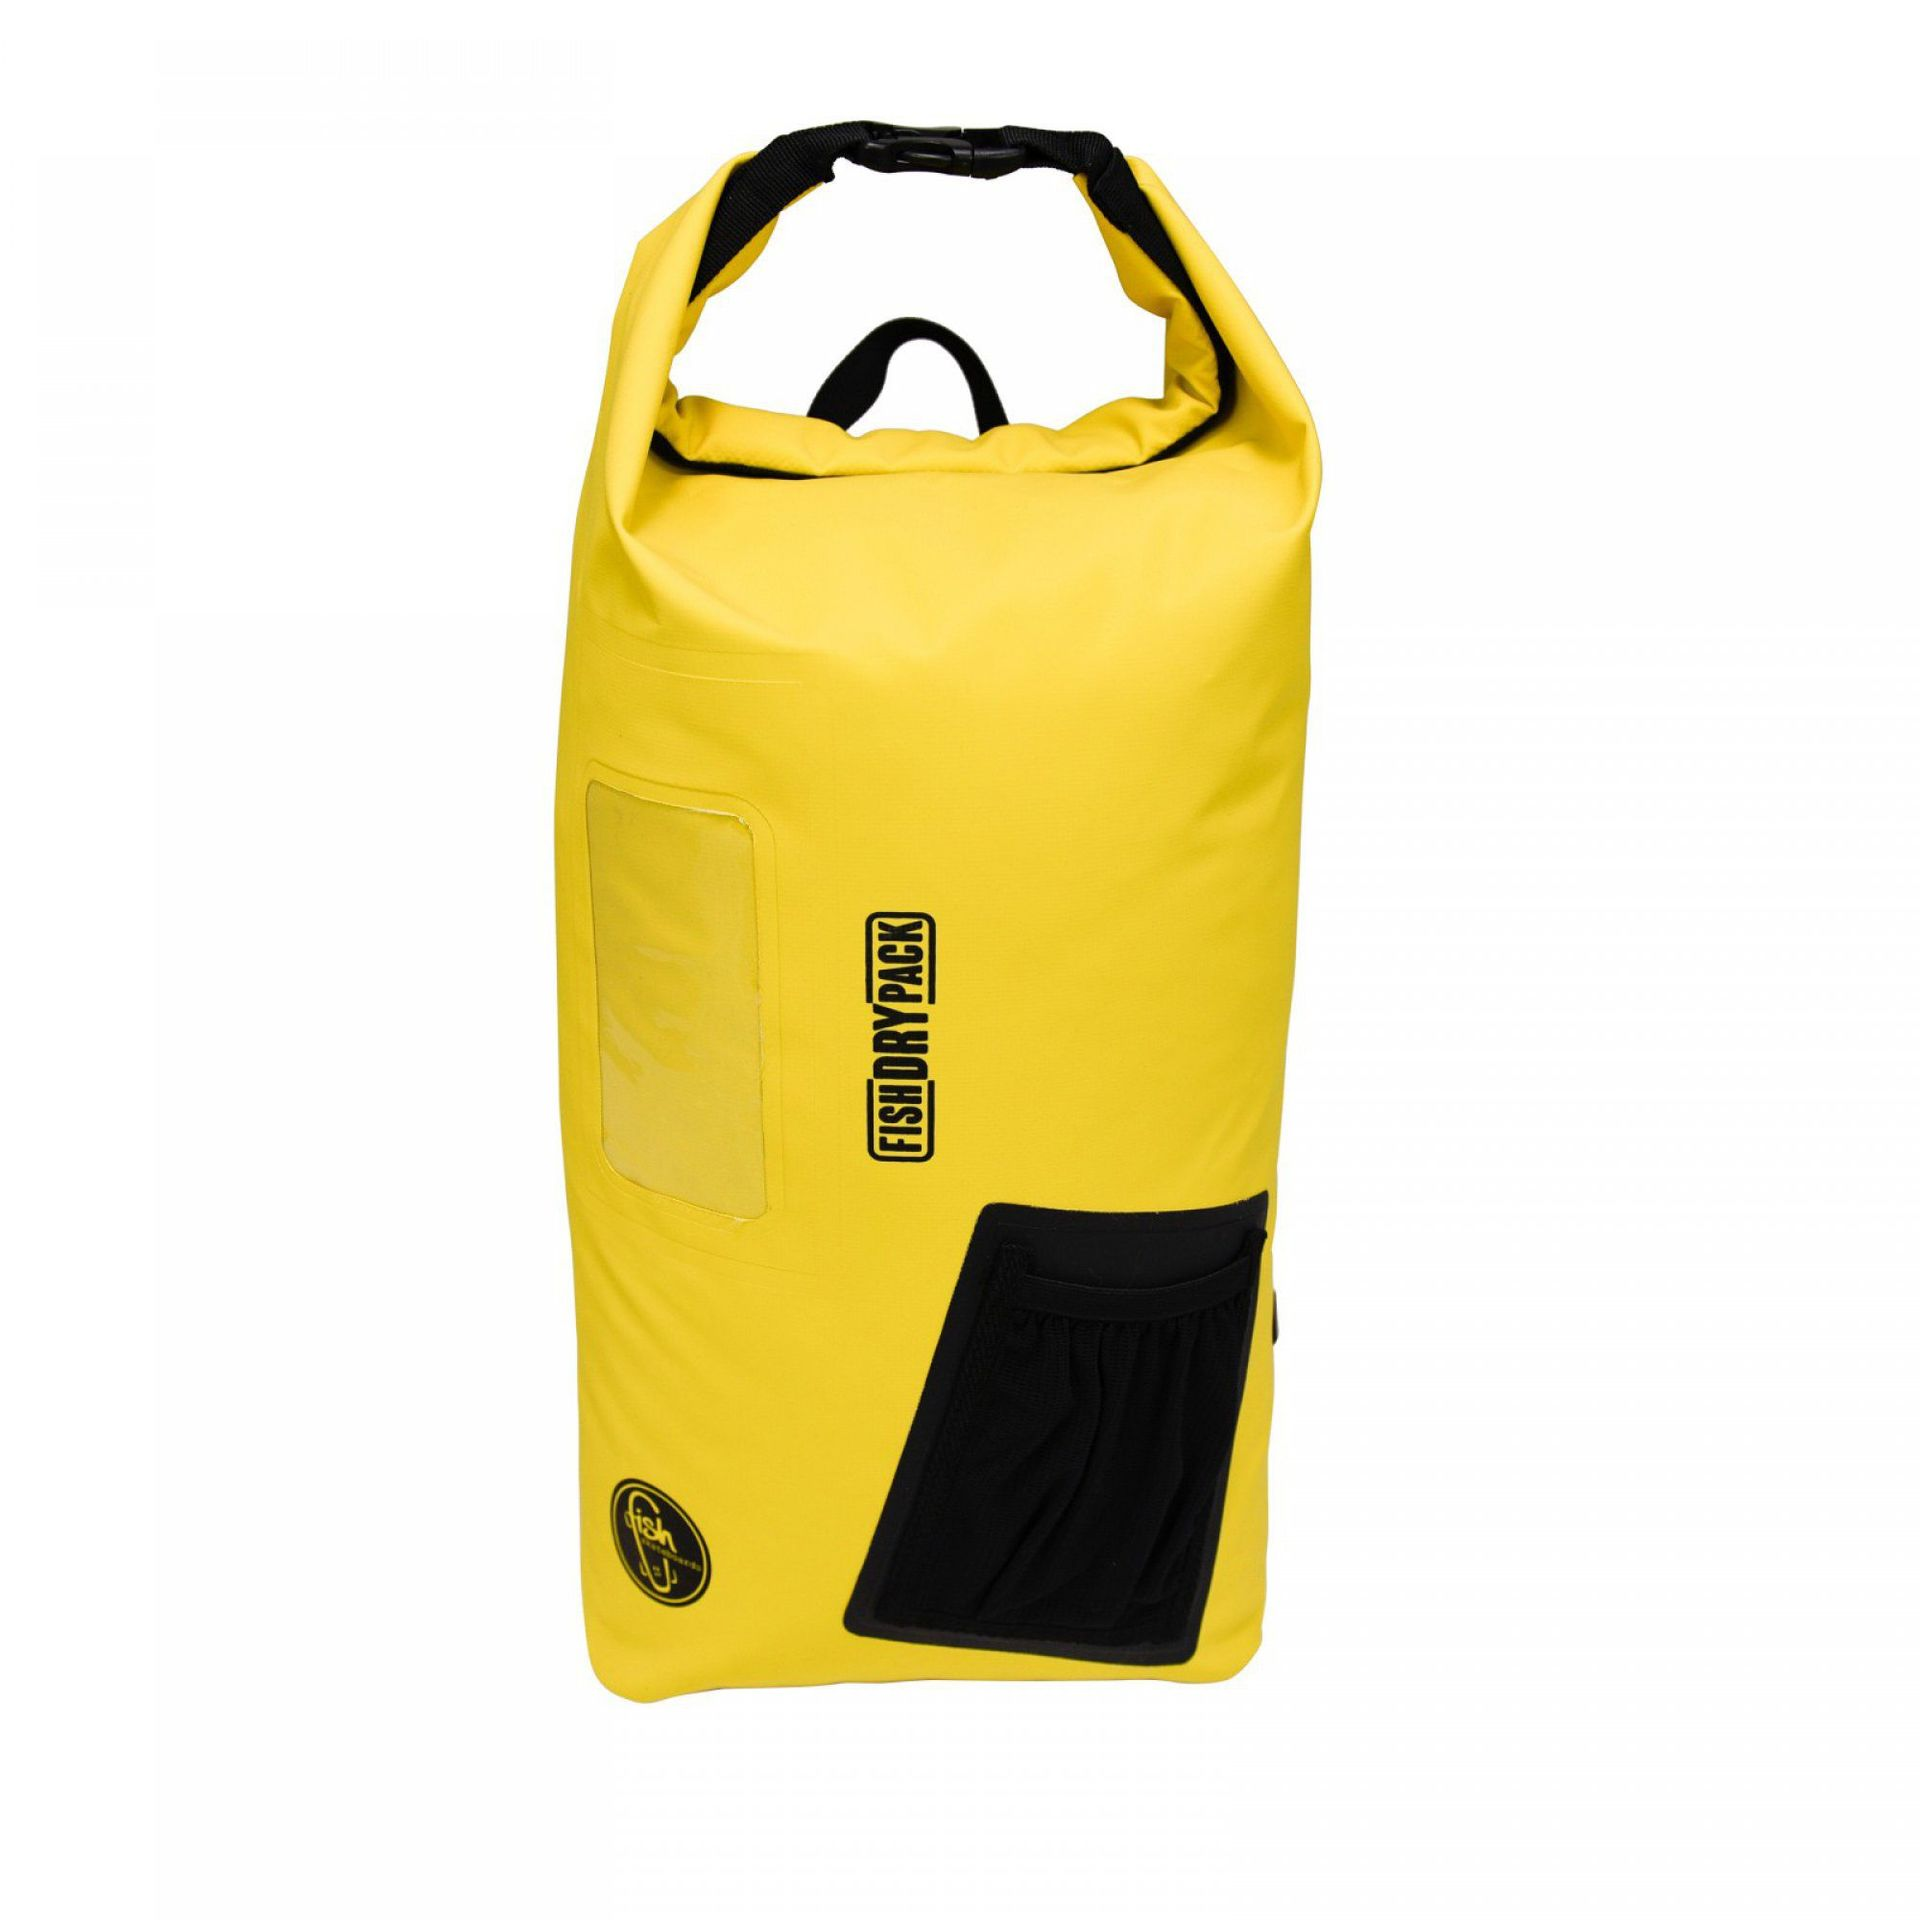 PLECAK FISH SKATEBOARDS FISH DRY PACK 18L YELLOW 1